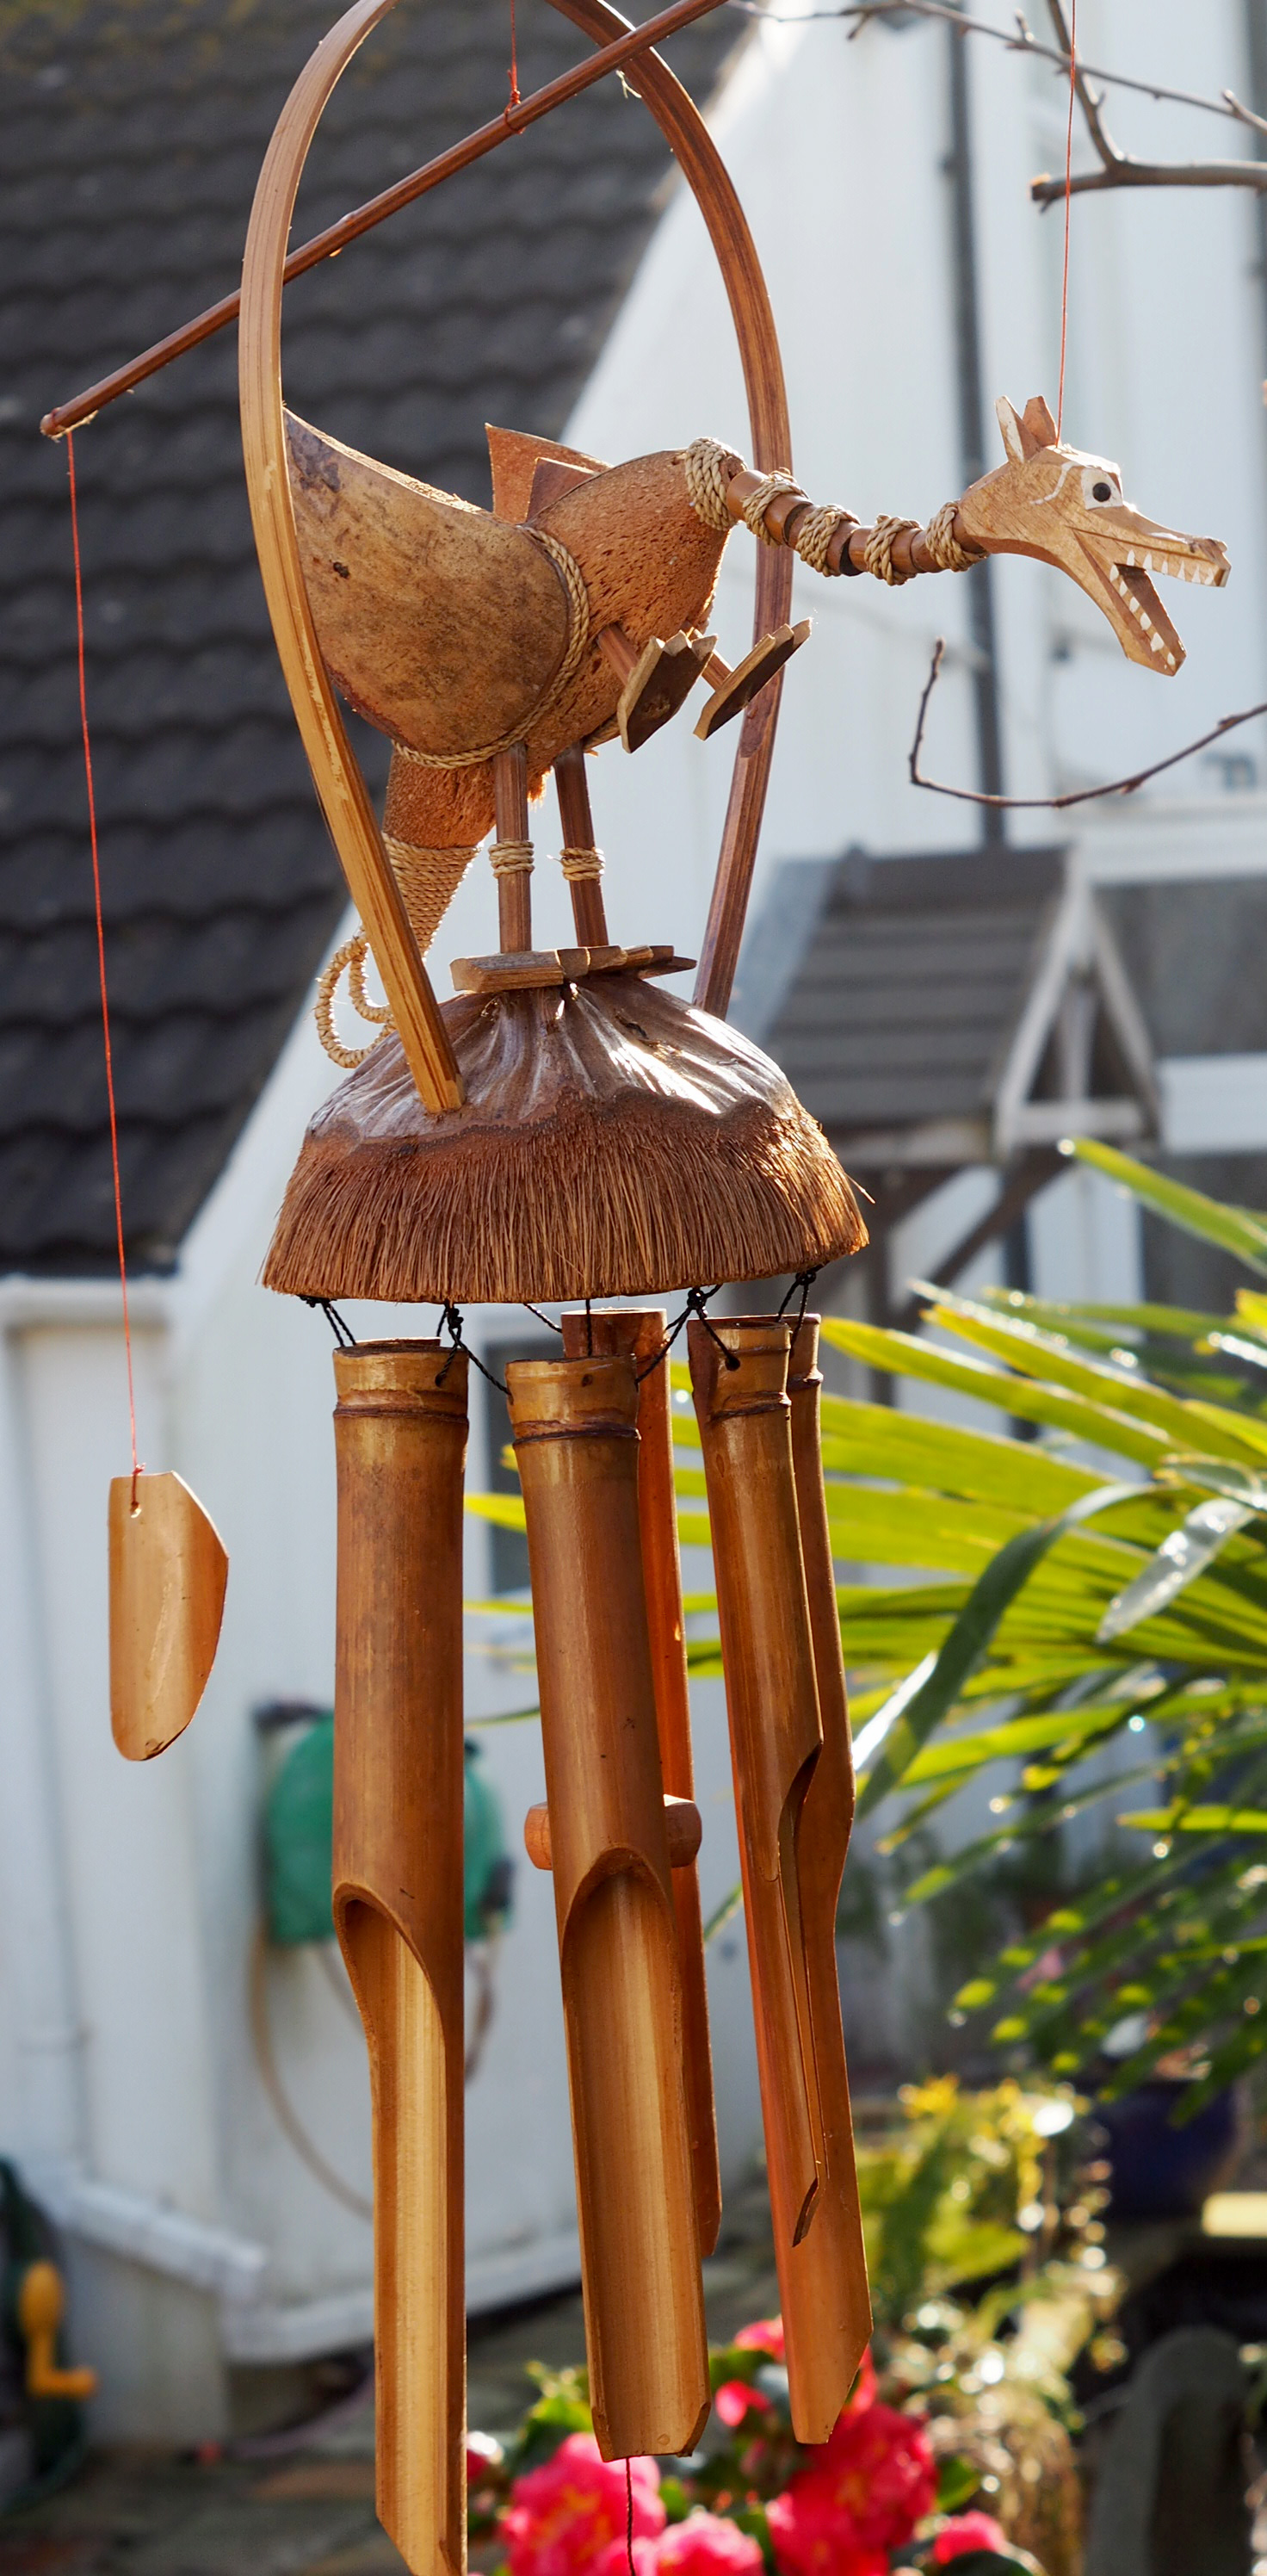 Large-Handmade-Fair-Trade-Coconut-And-Bamboo-Wind-Chime-Mobiles-6-Designs miniatuur 10